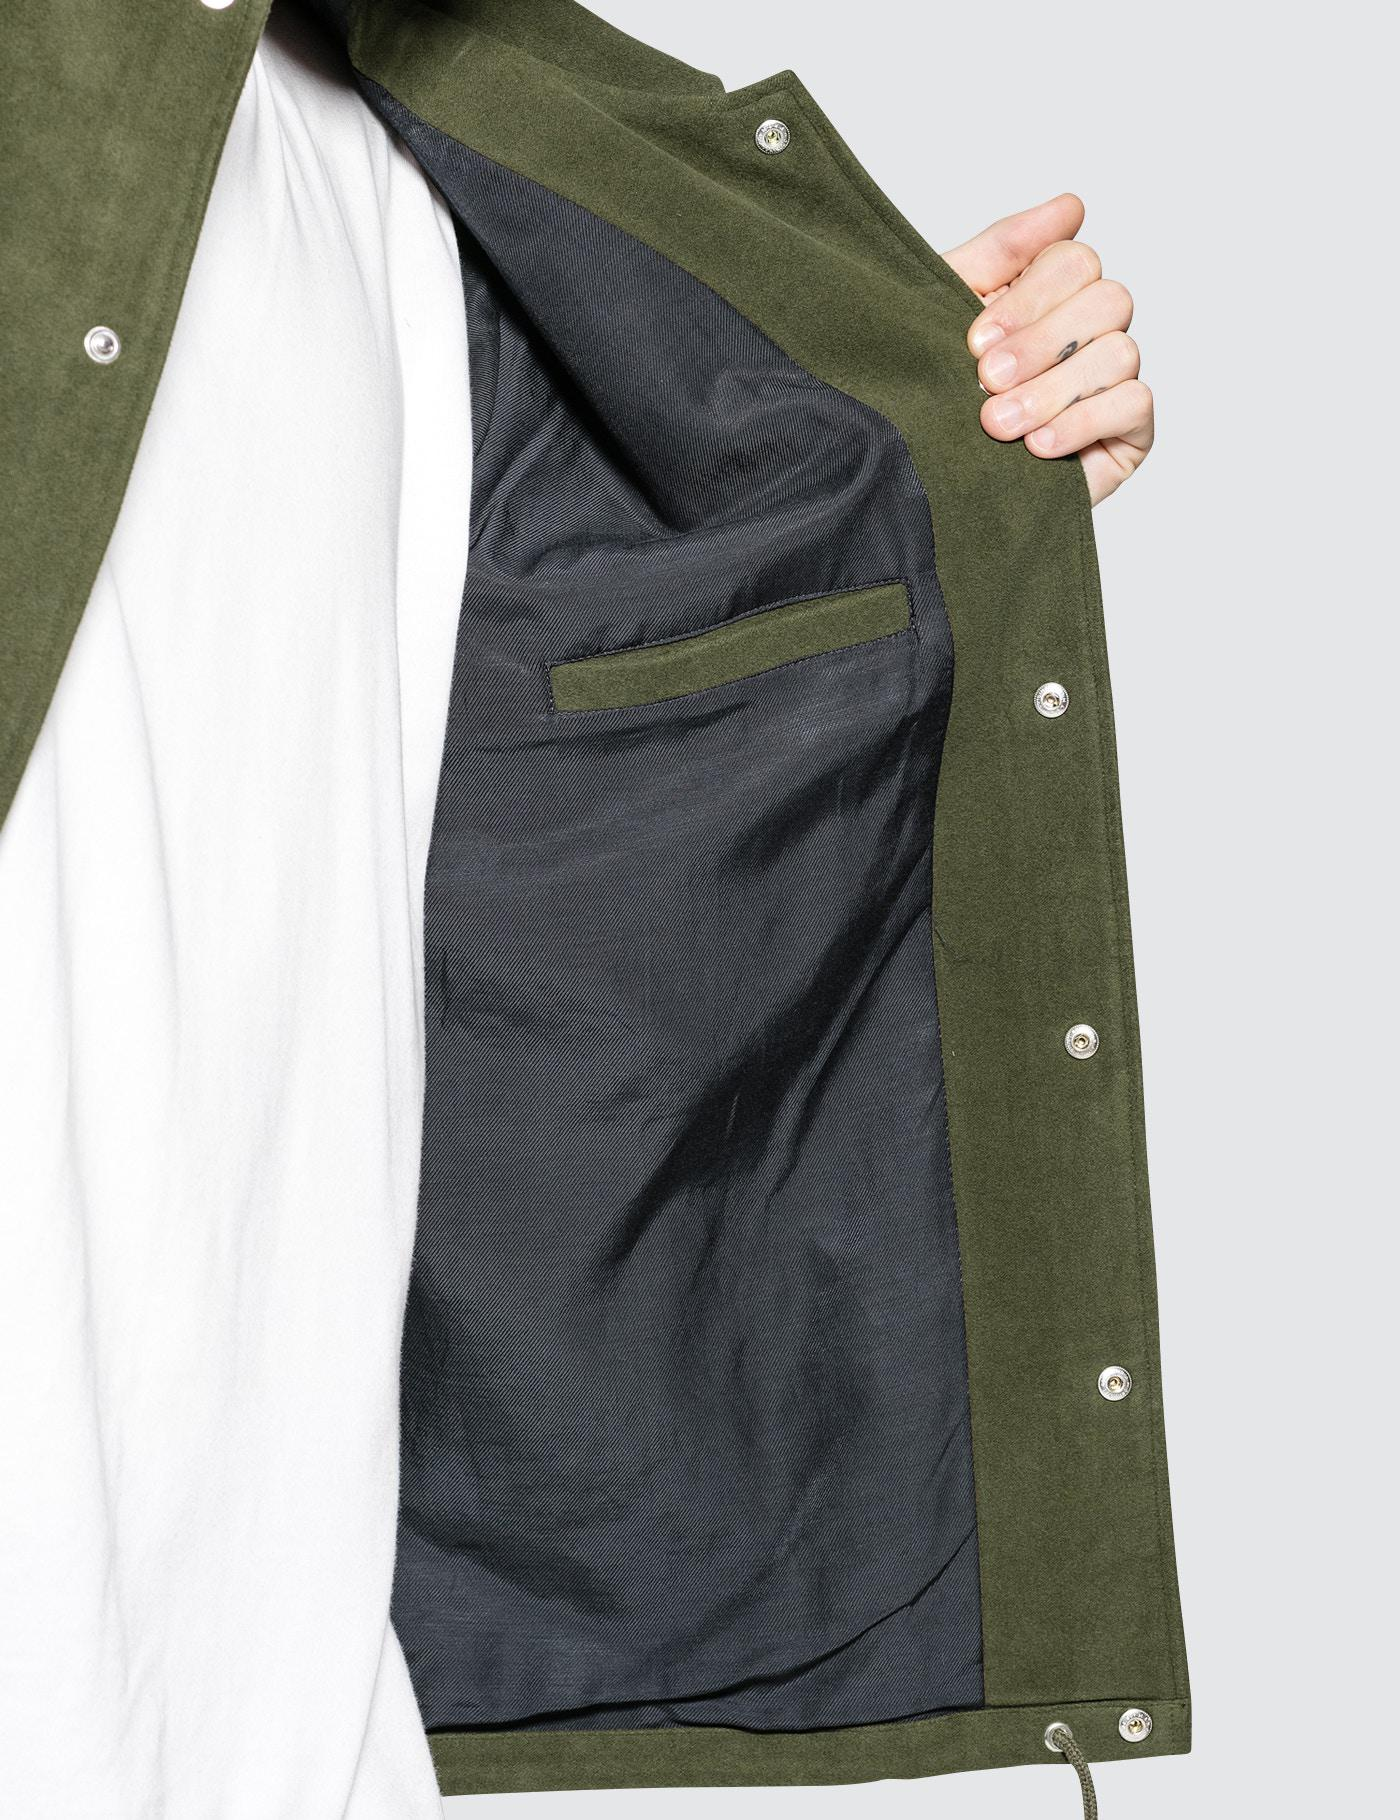 Tres Bien Cotton Moleskin Coach Jacket in Olive (Green) for Men